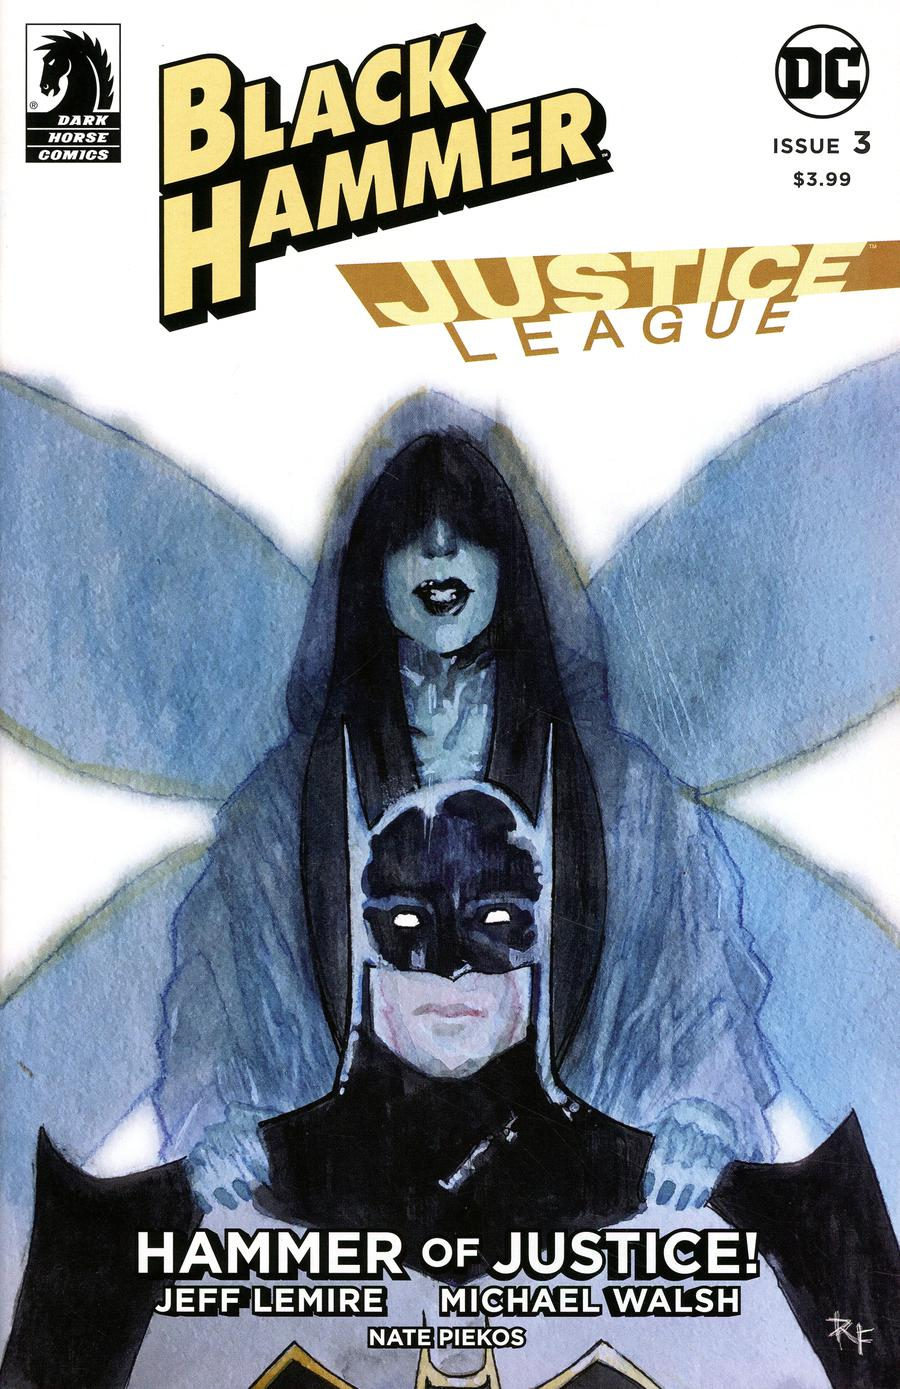 Black Hammer Justice League Hammer Of Justice #3 Cover C Variant Ray Fawkes Cover